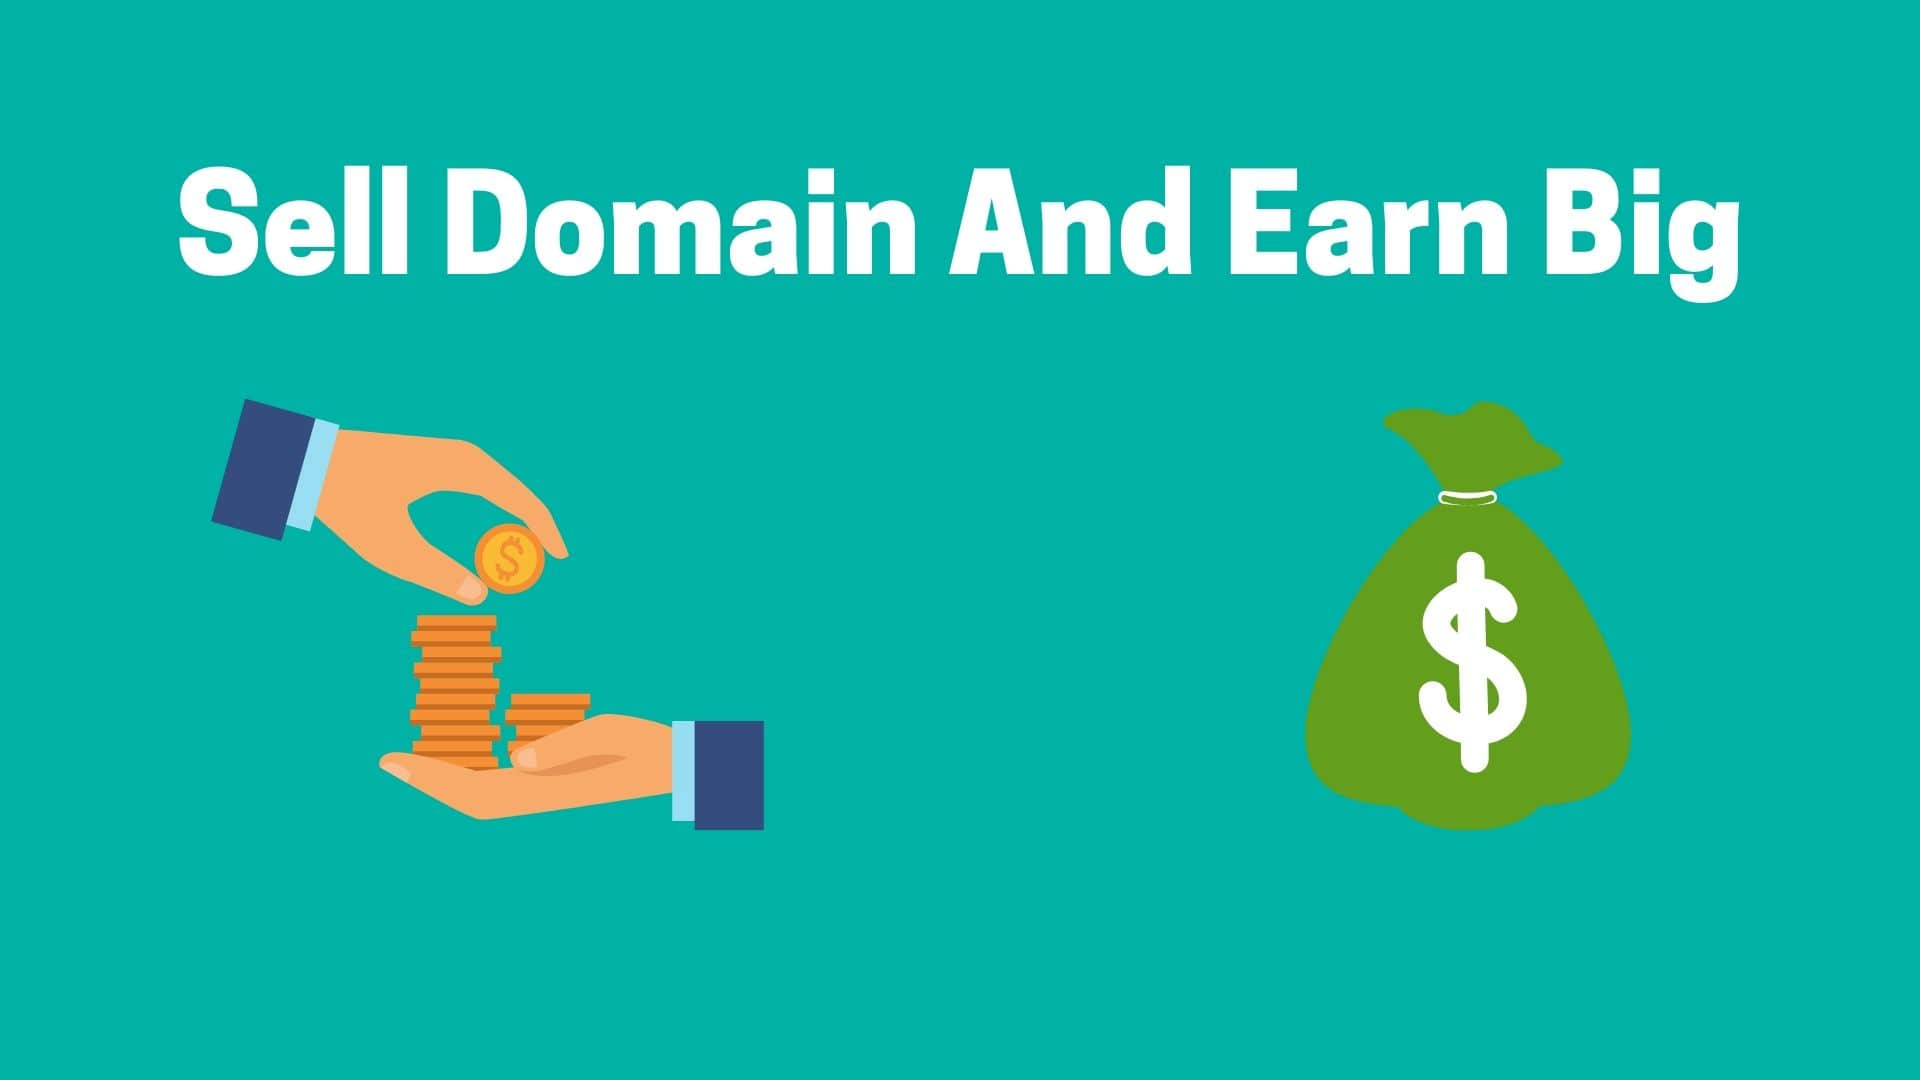 Sell Domain And Earn